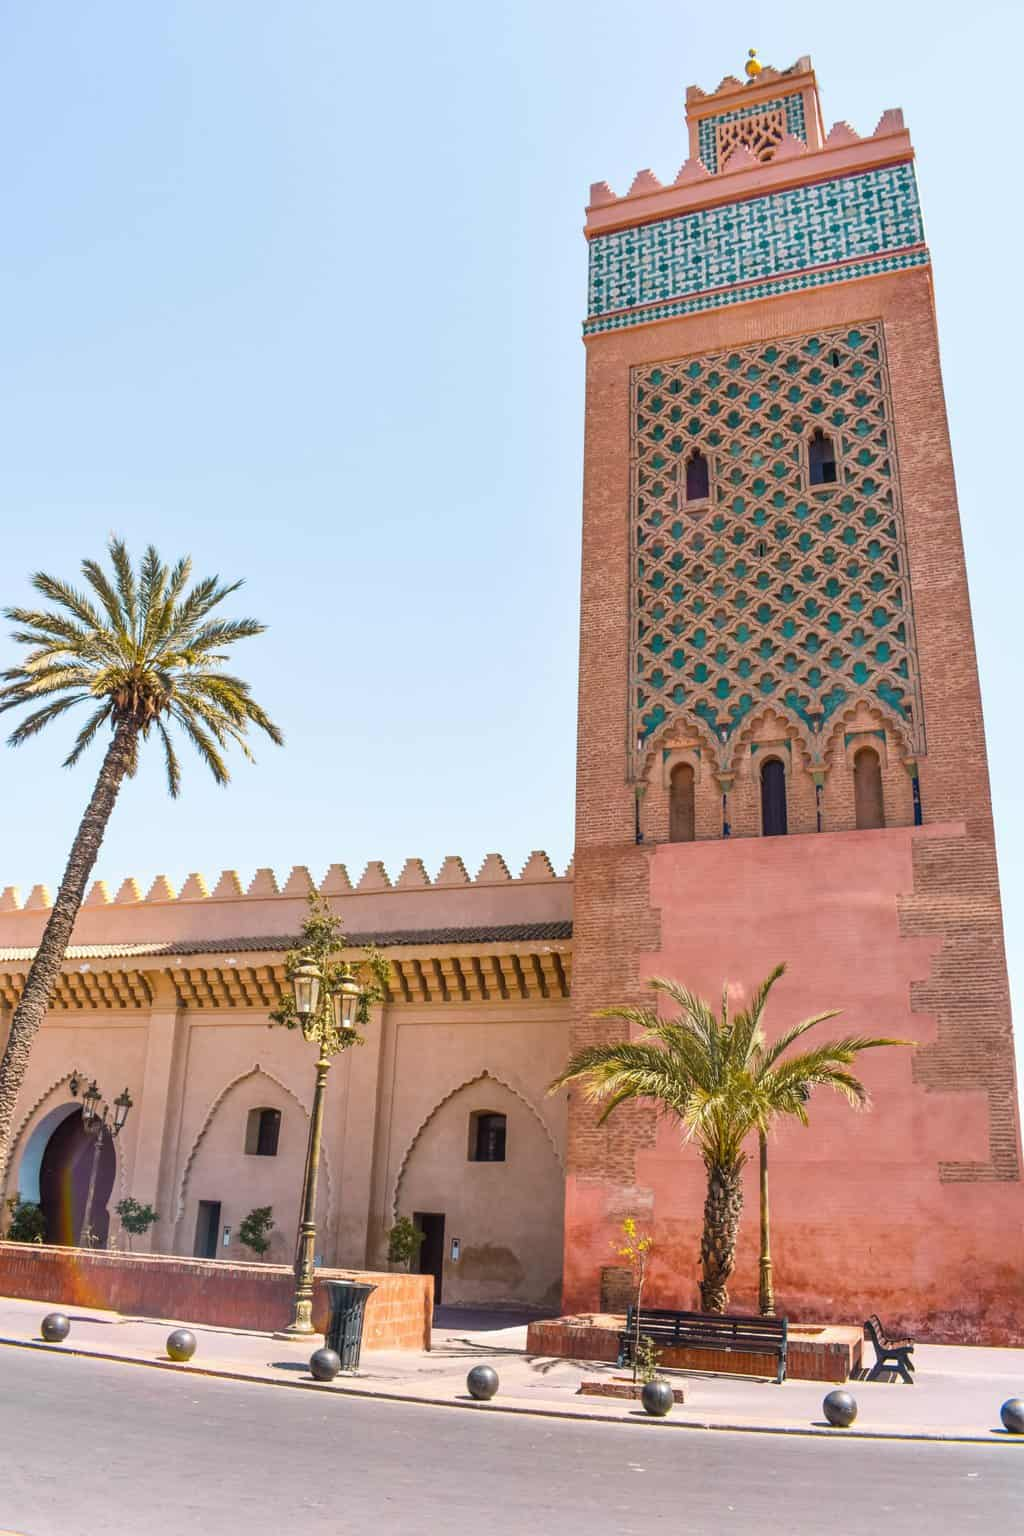 Sites to see in Marrakech